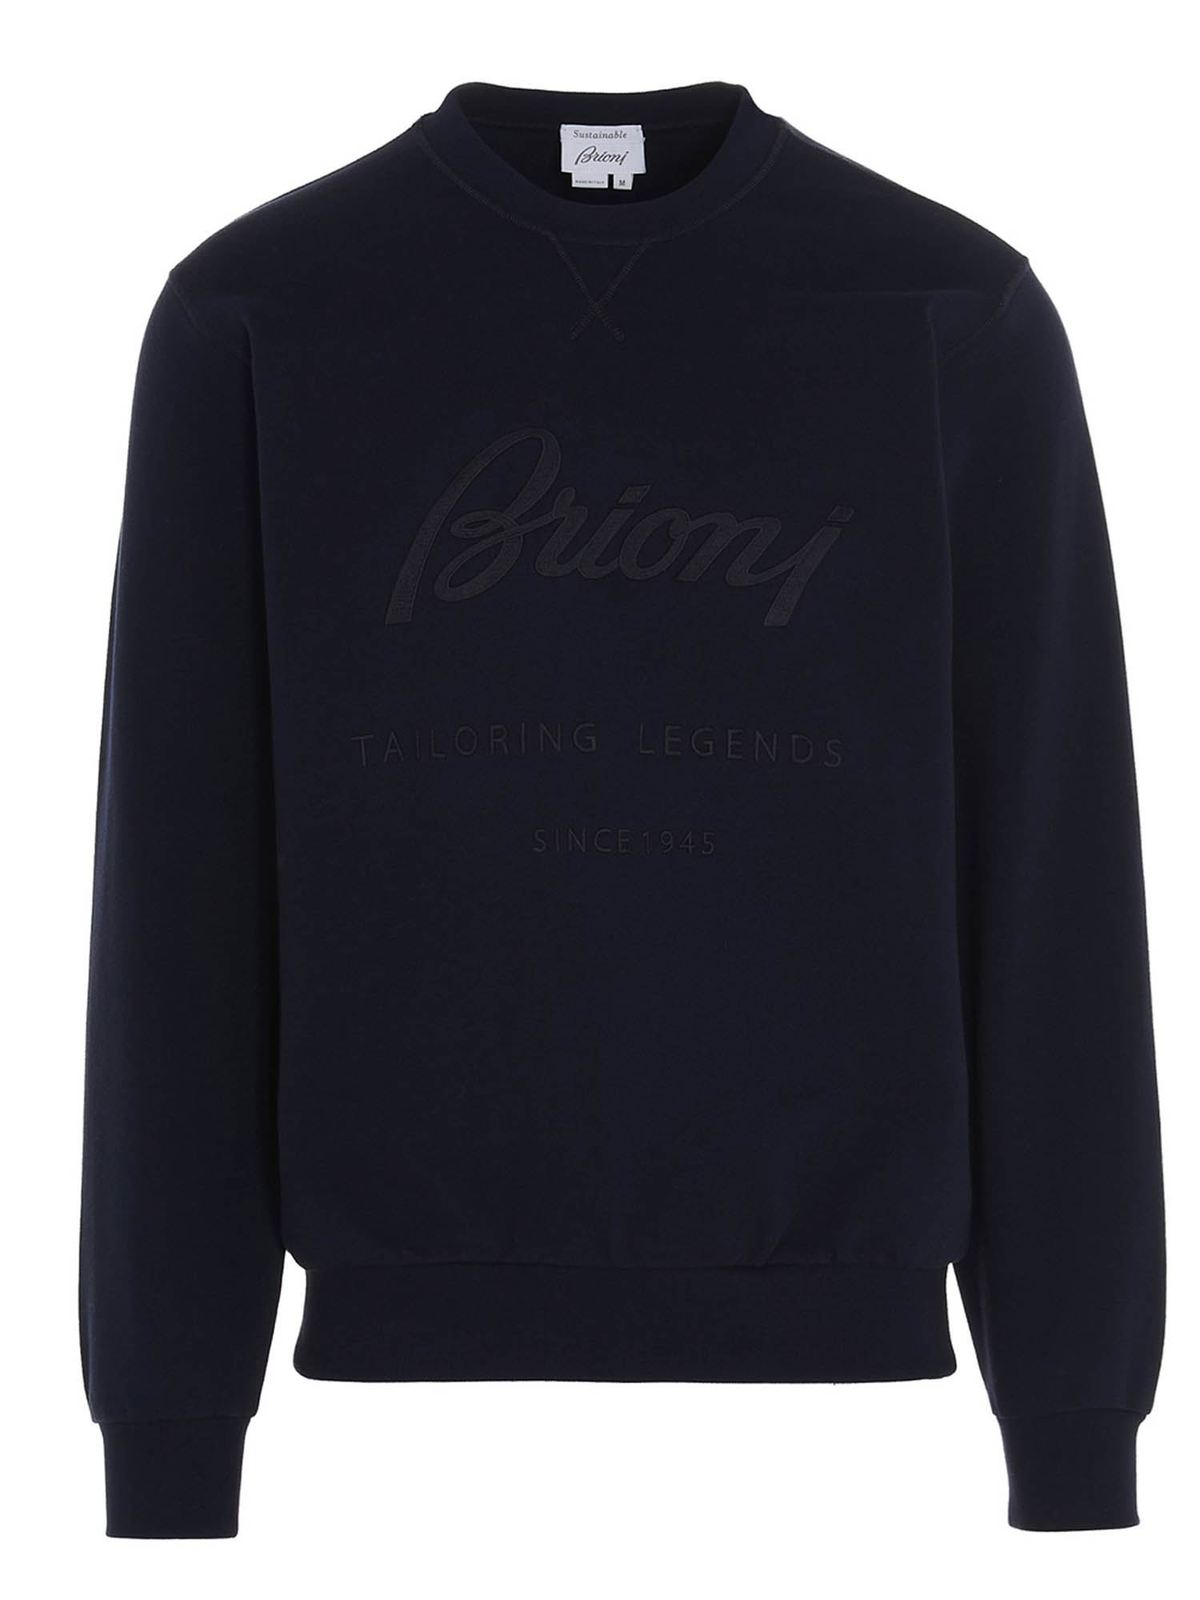 Brioni Clothing LOGO SWEATSHIRT EMBROIDERED IN BLUE